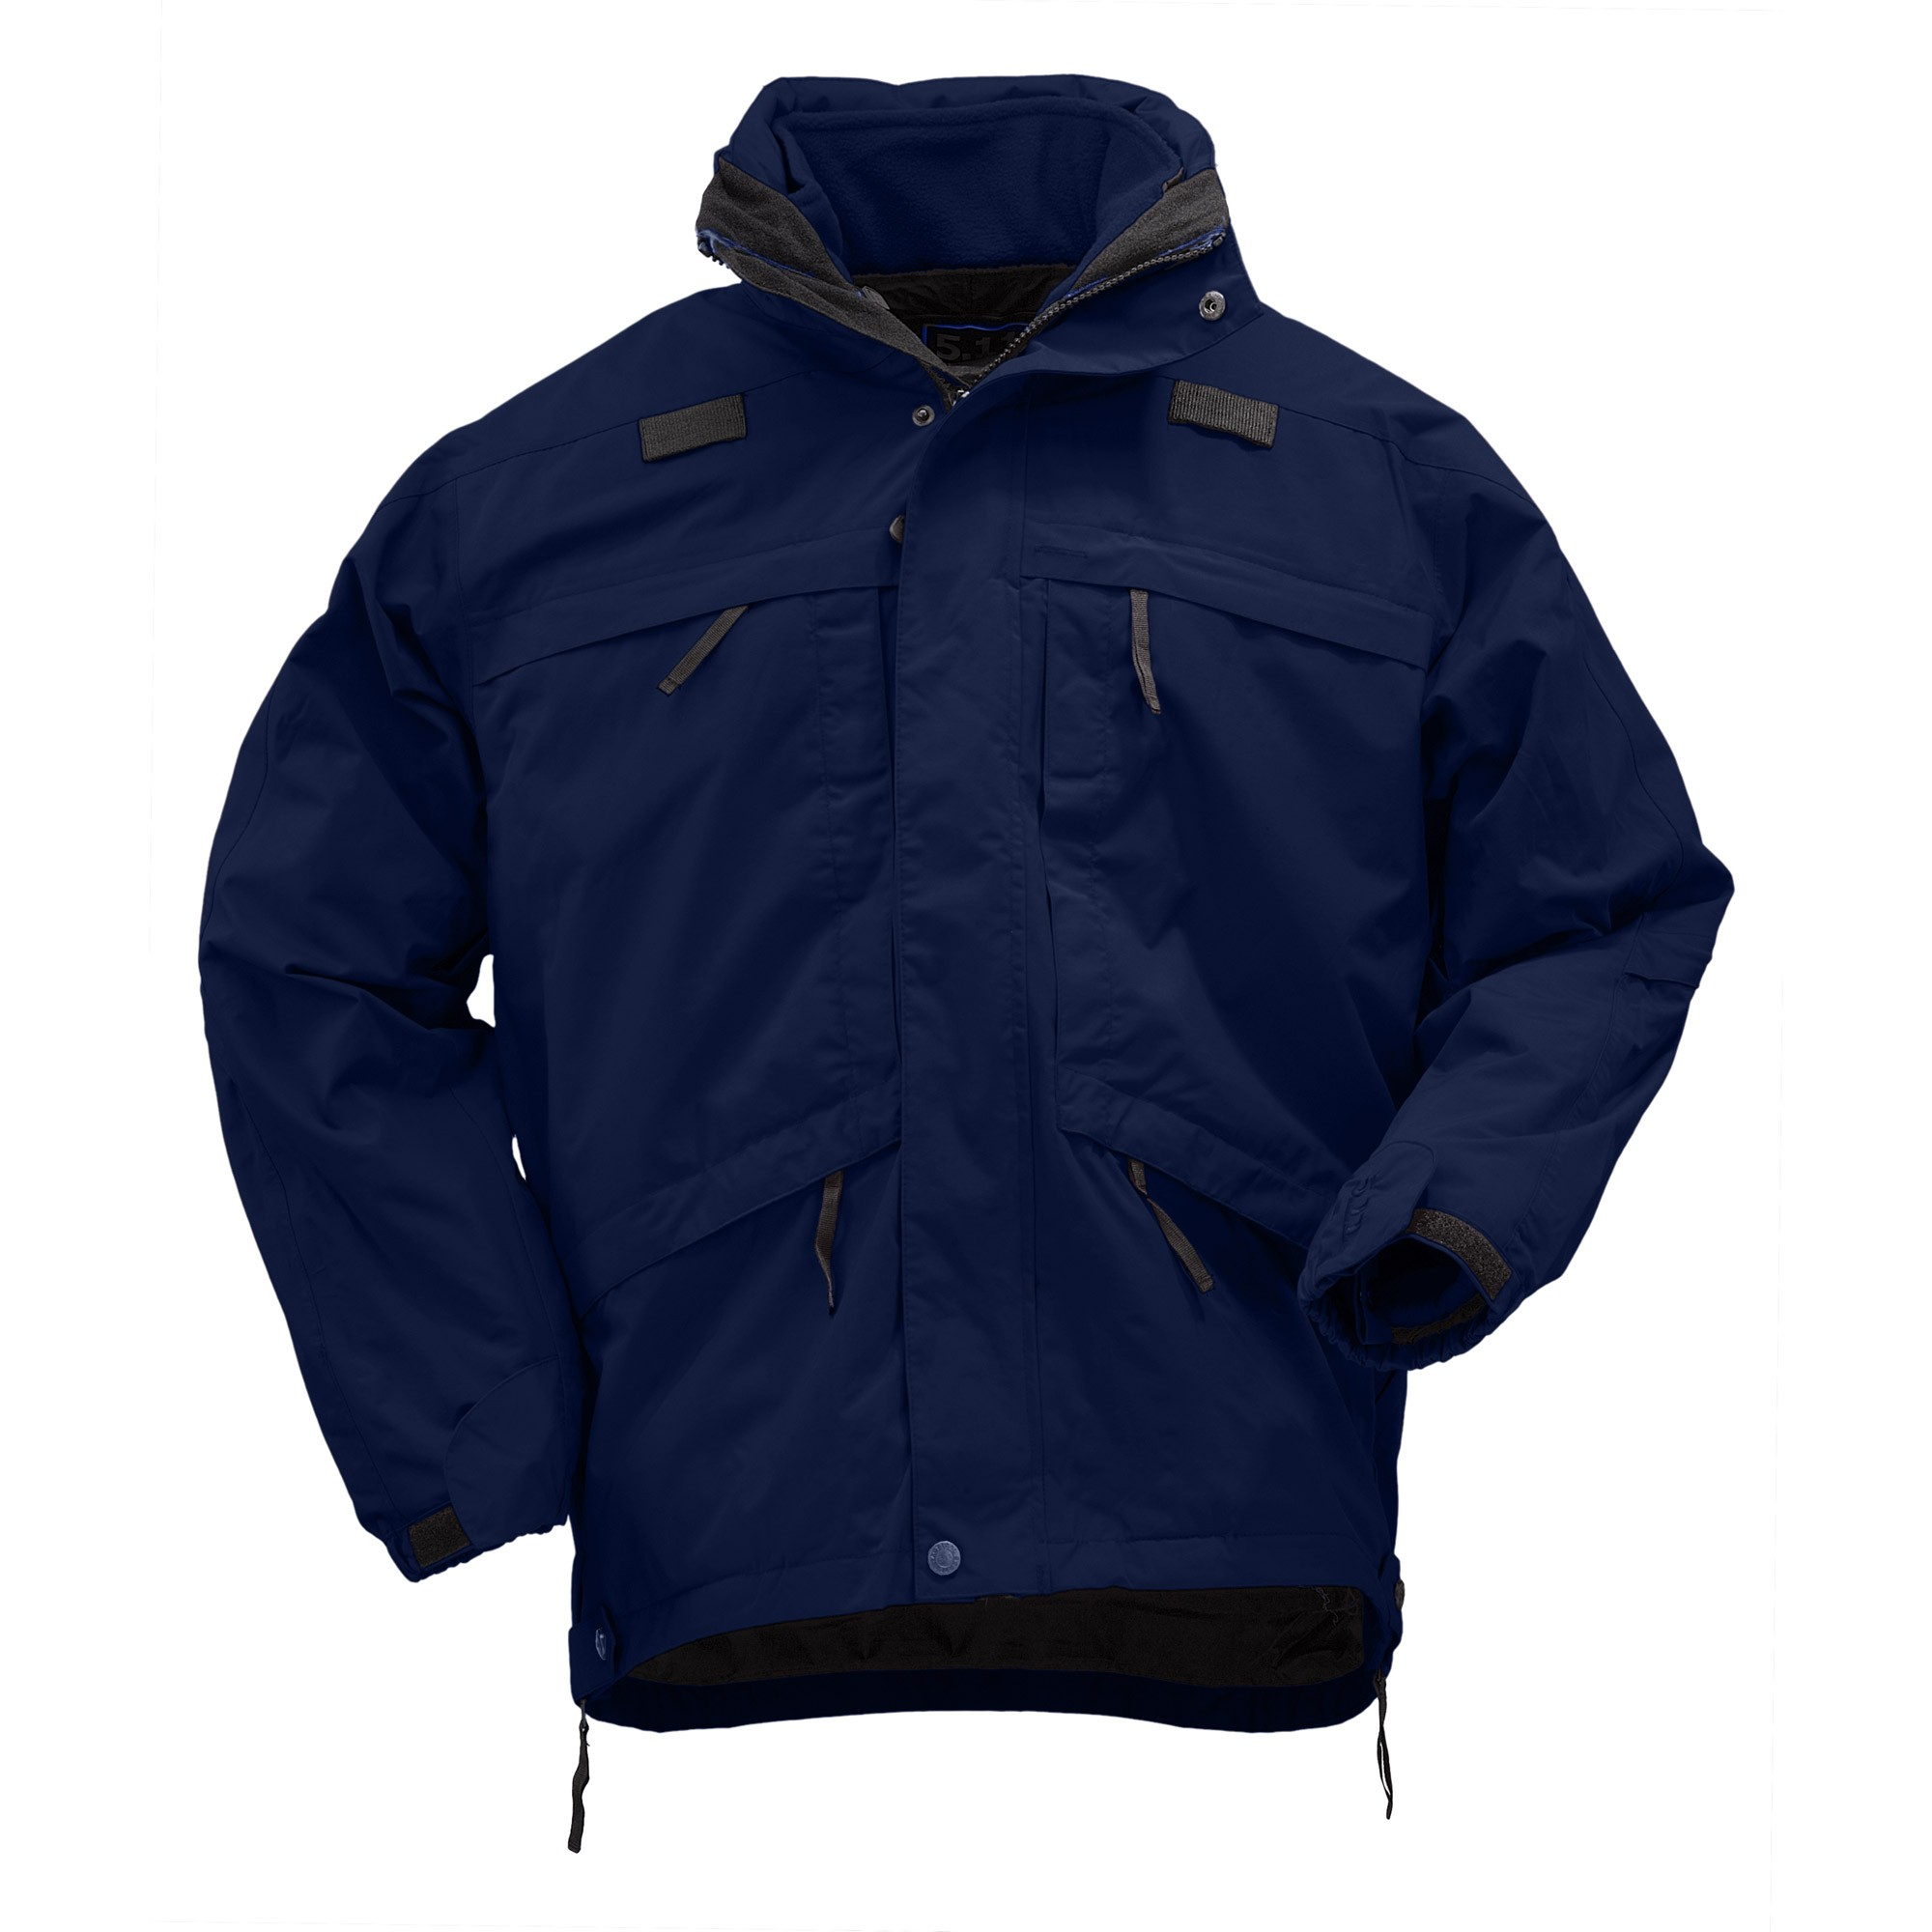 5.11 Mens 3-in-1 Parka 48001